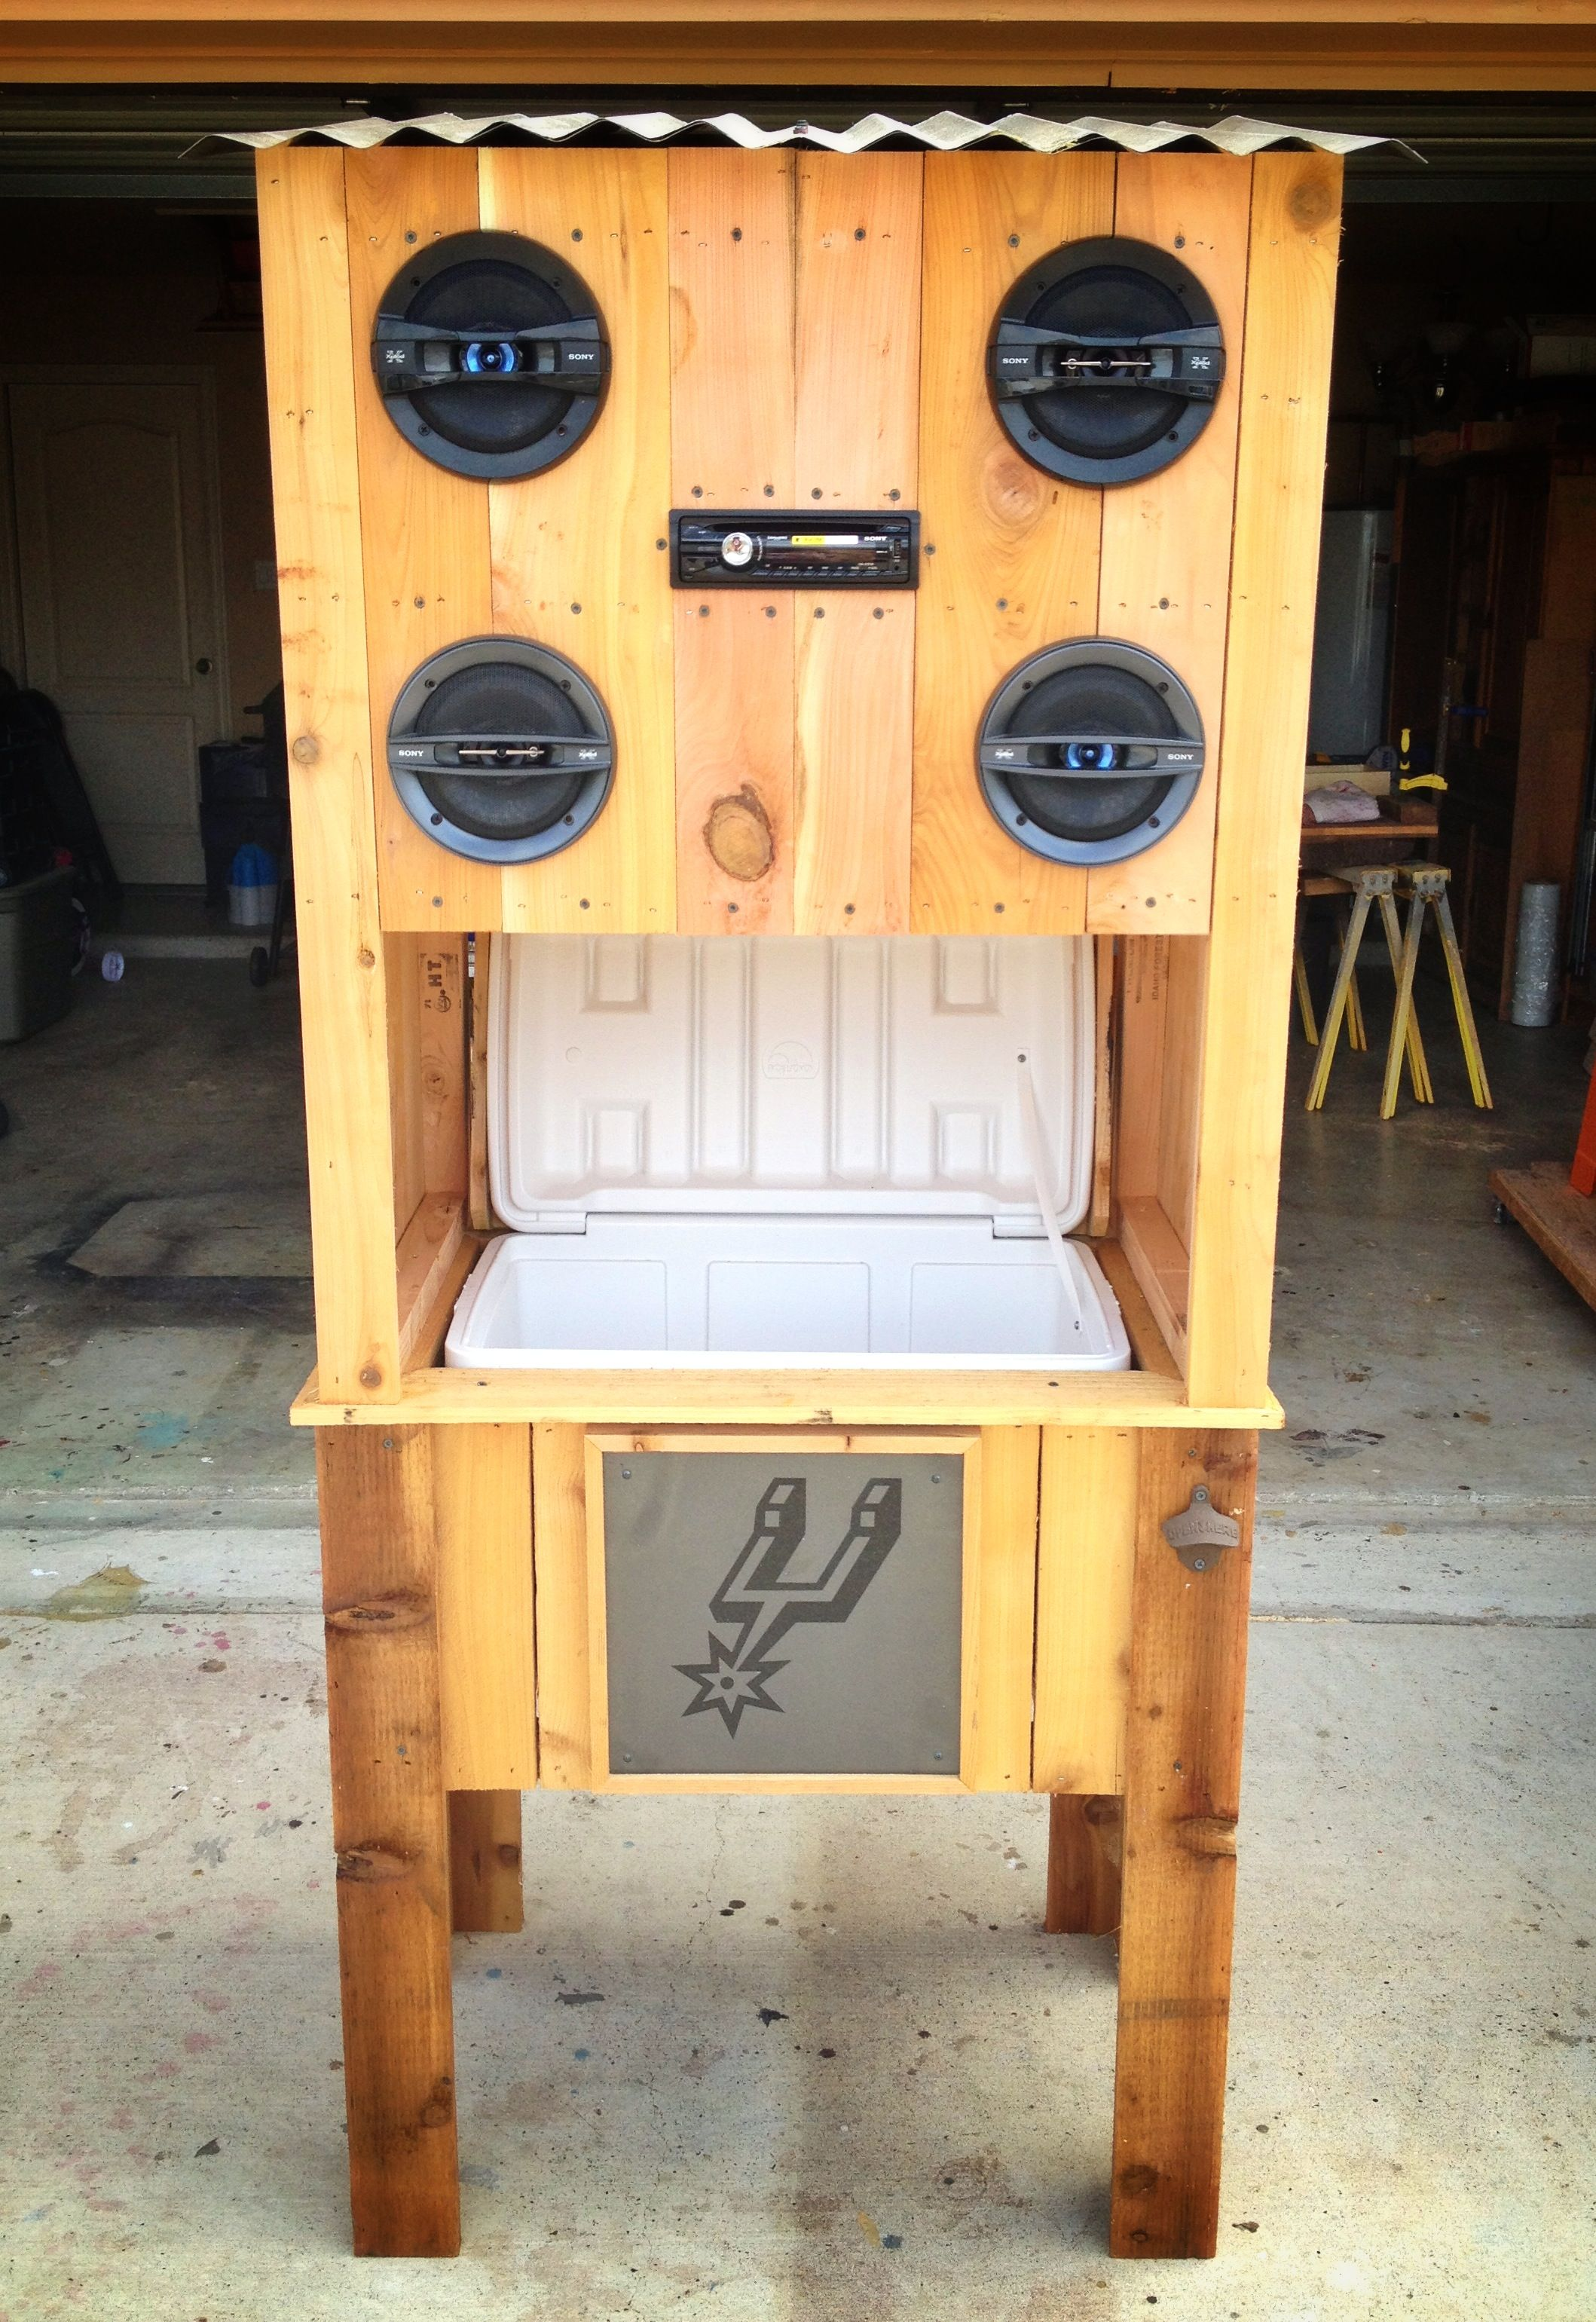 Spurs Cedar Cooler With Sony Stereo System Wood Projects Wood Diy Wood Cooler